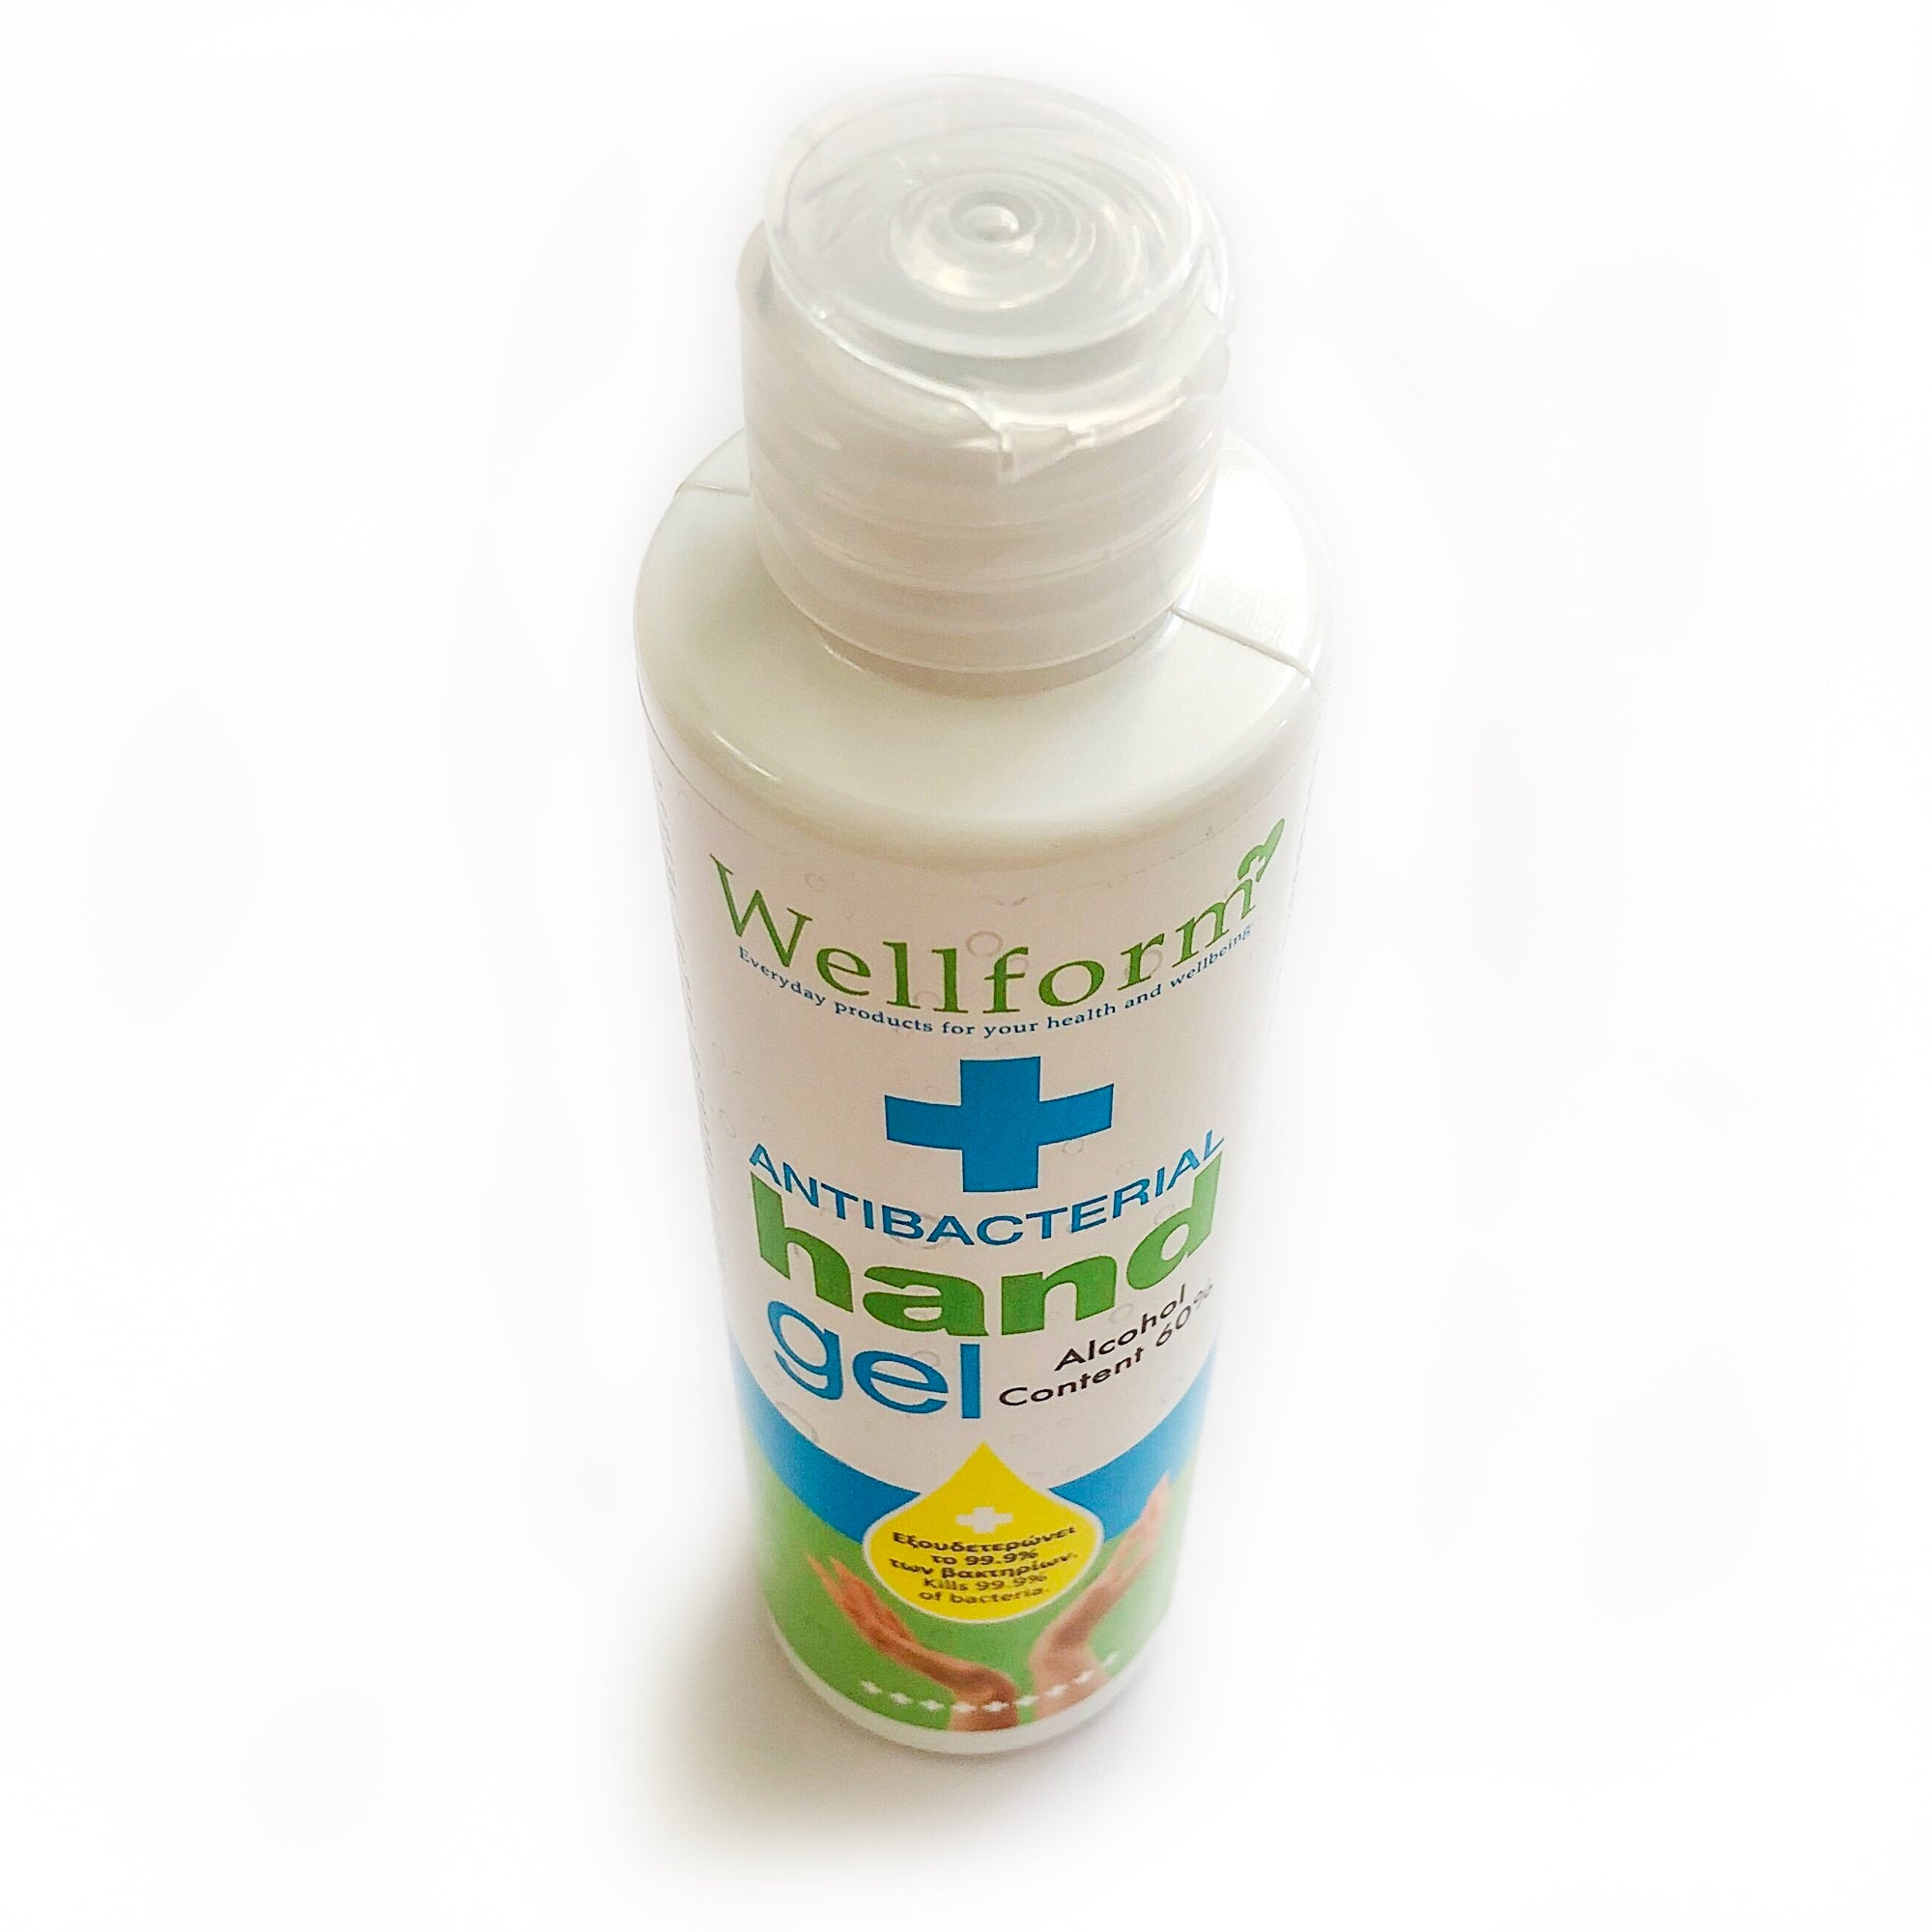 Antibacterial Hand Gel - 250ml